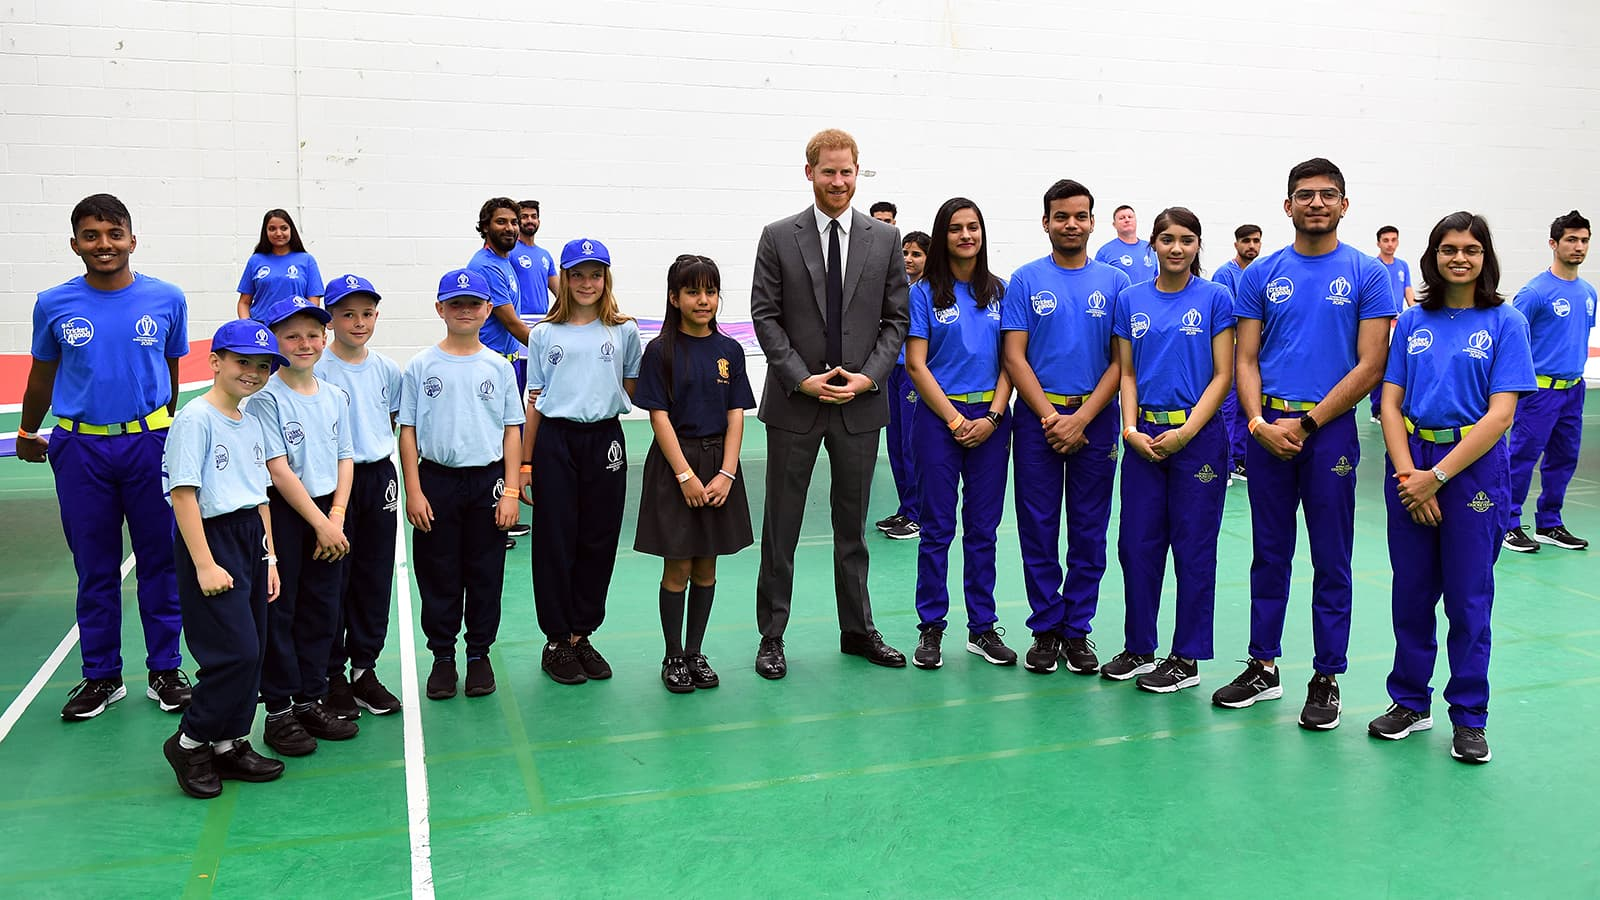 Britain's Prince Harry, Duke of Sussex poses with children as he attends the opening match of the World Cup 2019 between England and South Africa at The Oval in London on May 30. — Reuters